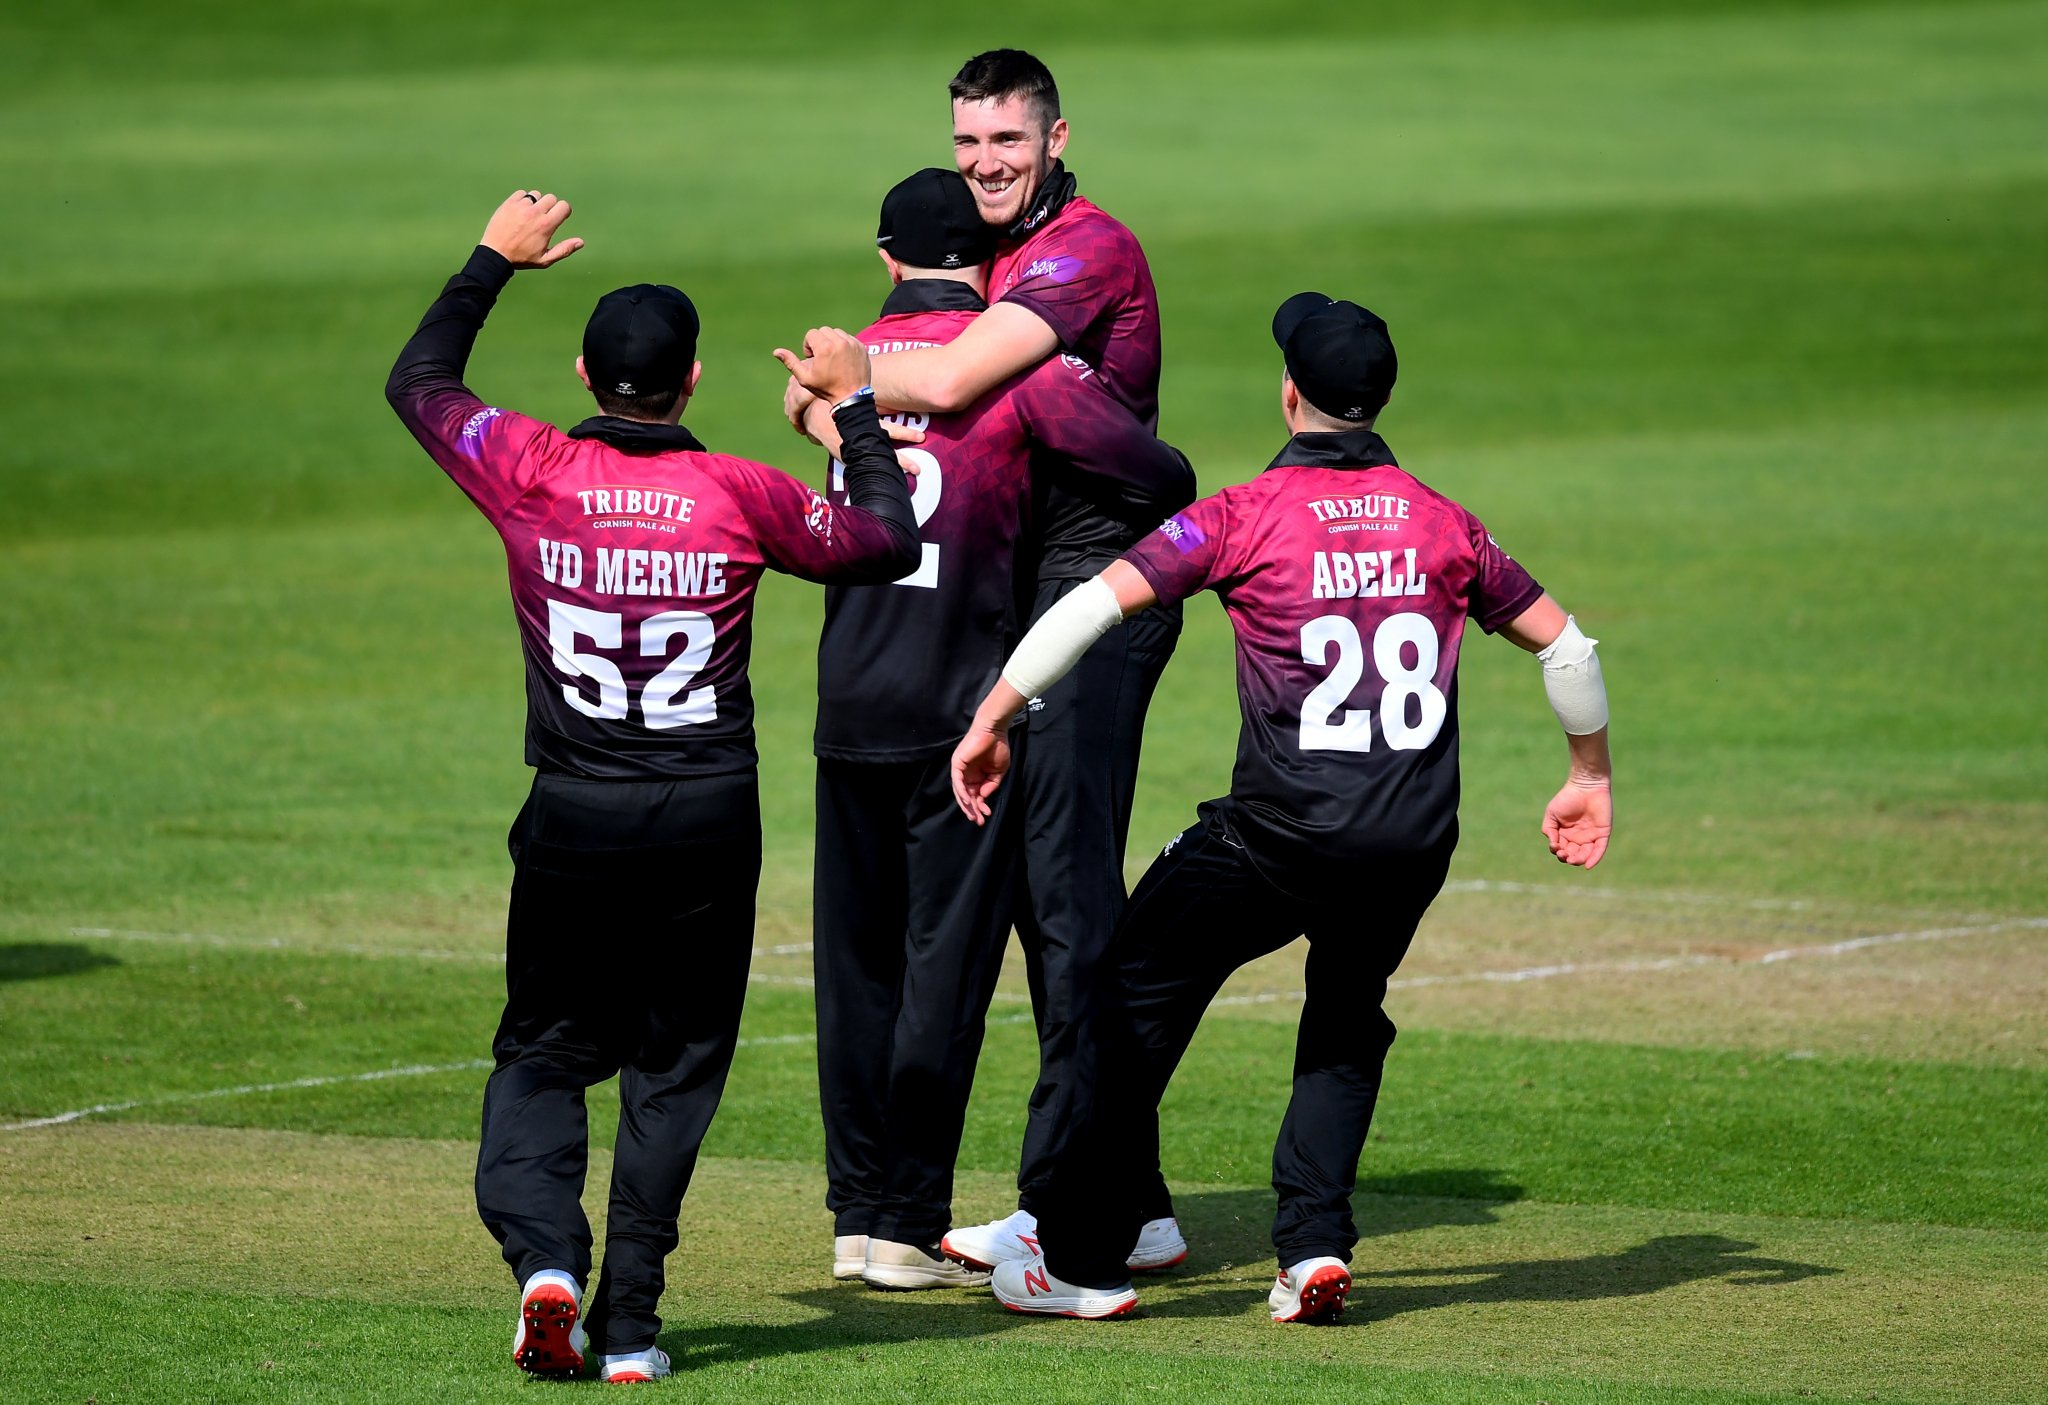 VICTORY: Craig Overton (centre) impressed with bat and ball as Somerset won their second straight Royal London One-Day Cup match. Pic: Alex Davidson/SCCC